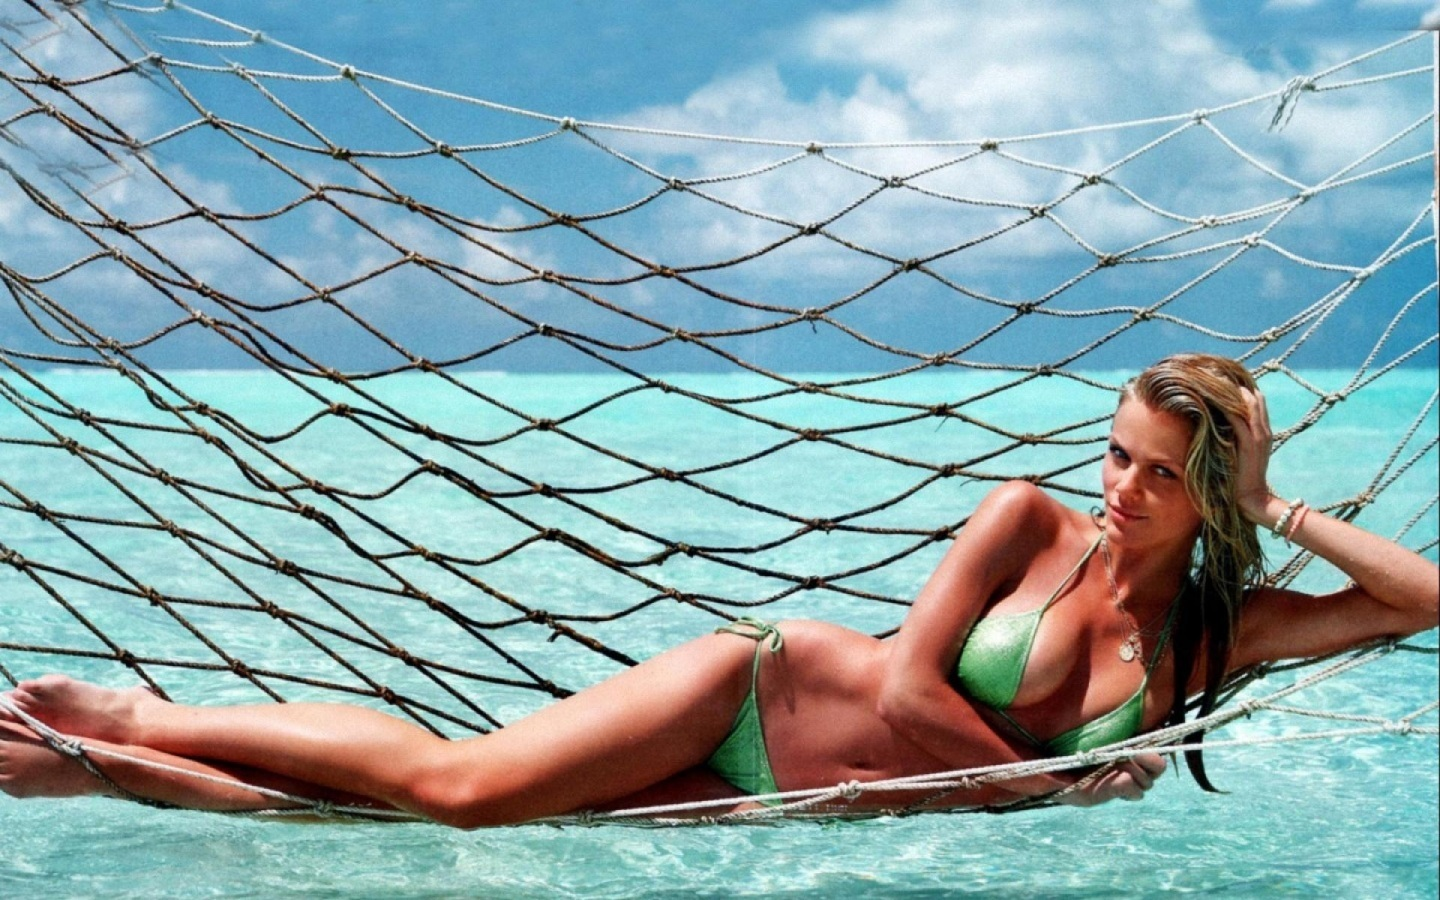 Brooklyn Decker Green Bikini Bikini